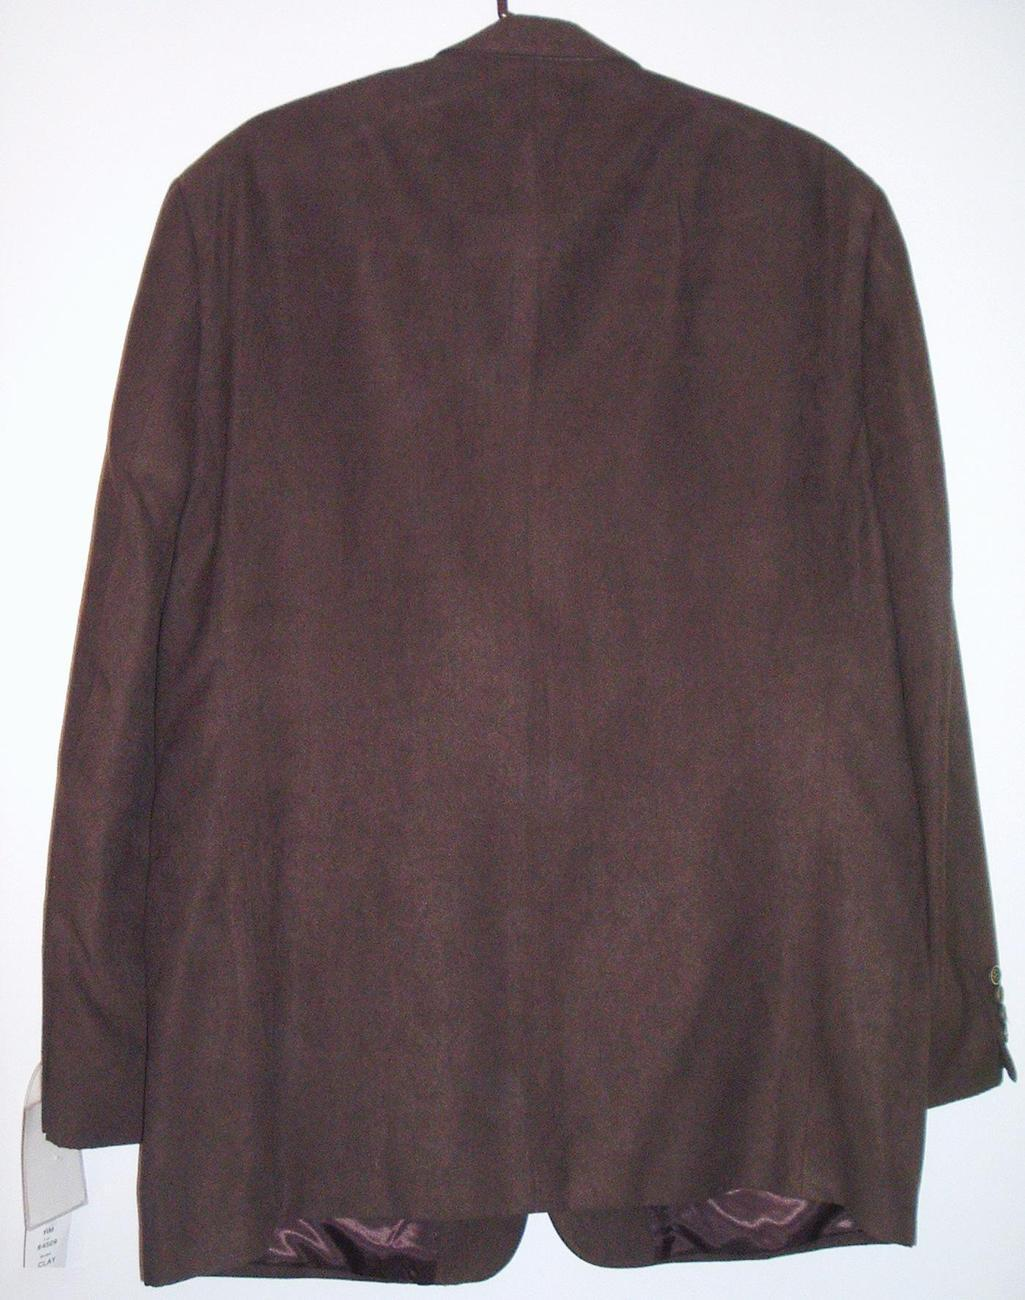 Andrew Fezza Brown Poly Suede Sport Coat Jacket 46L NWT